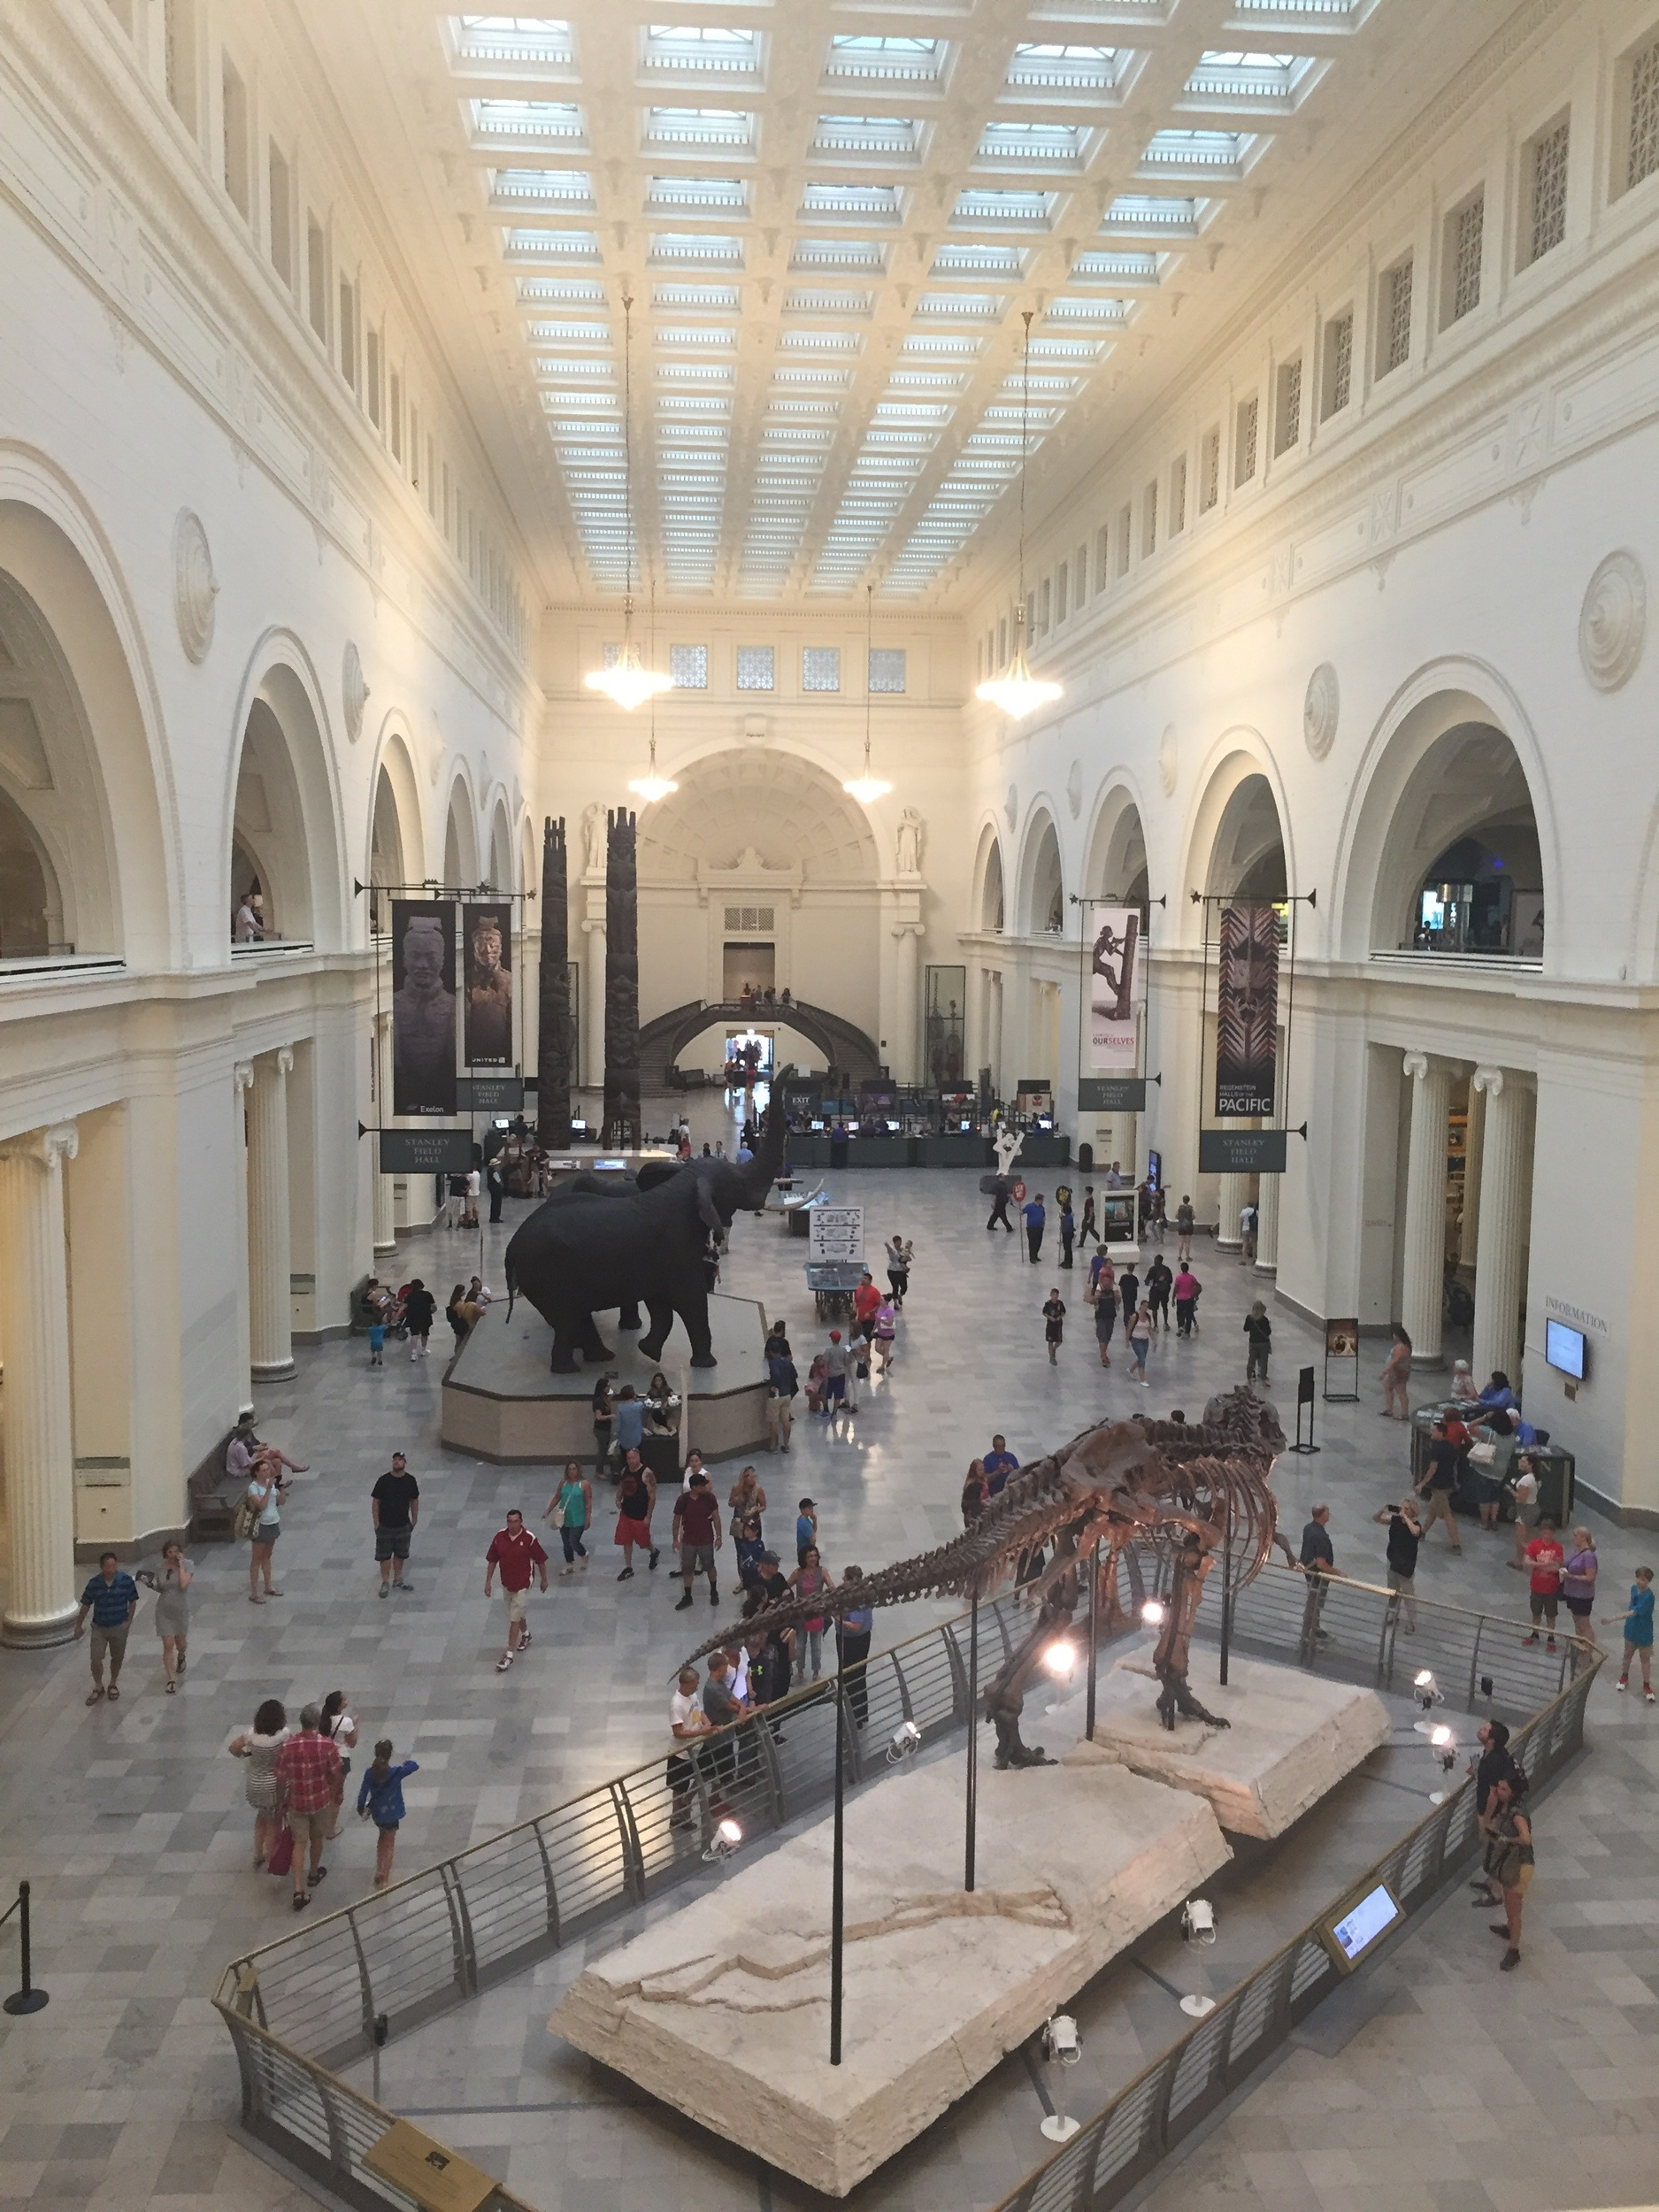 After a visit to Chicago's Field Museum, 7-29-16